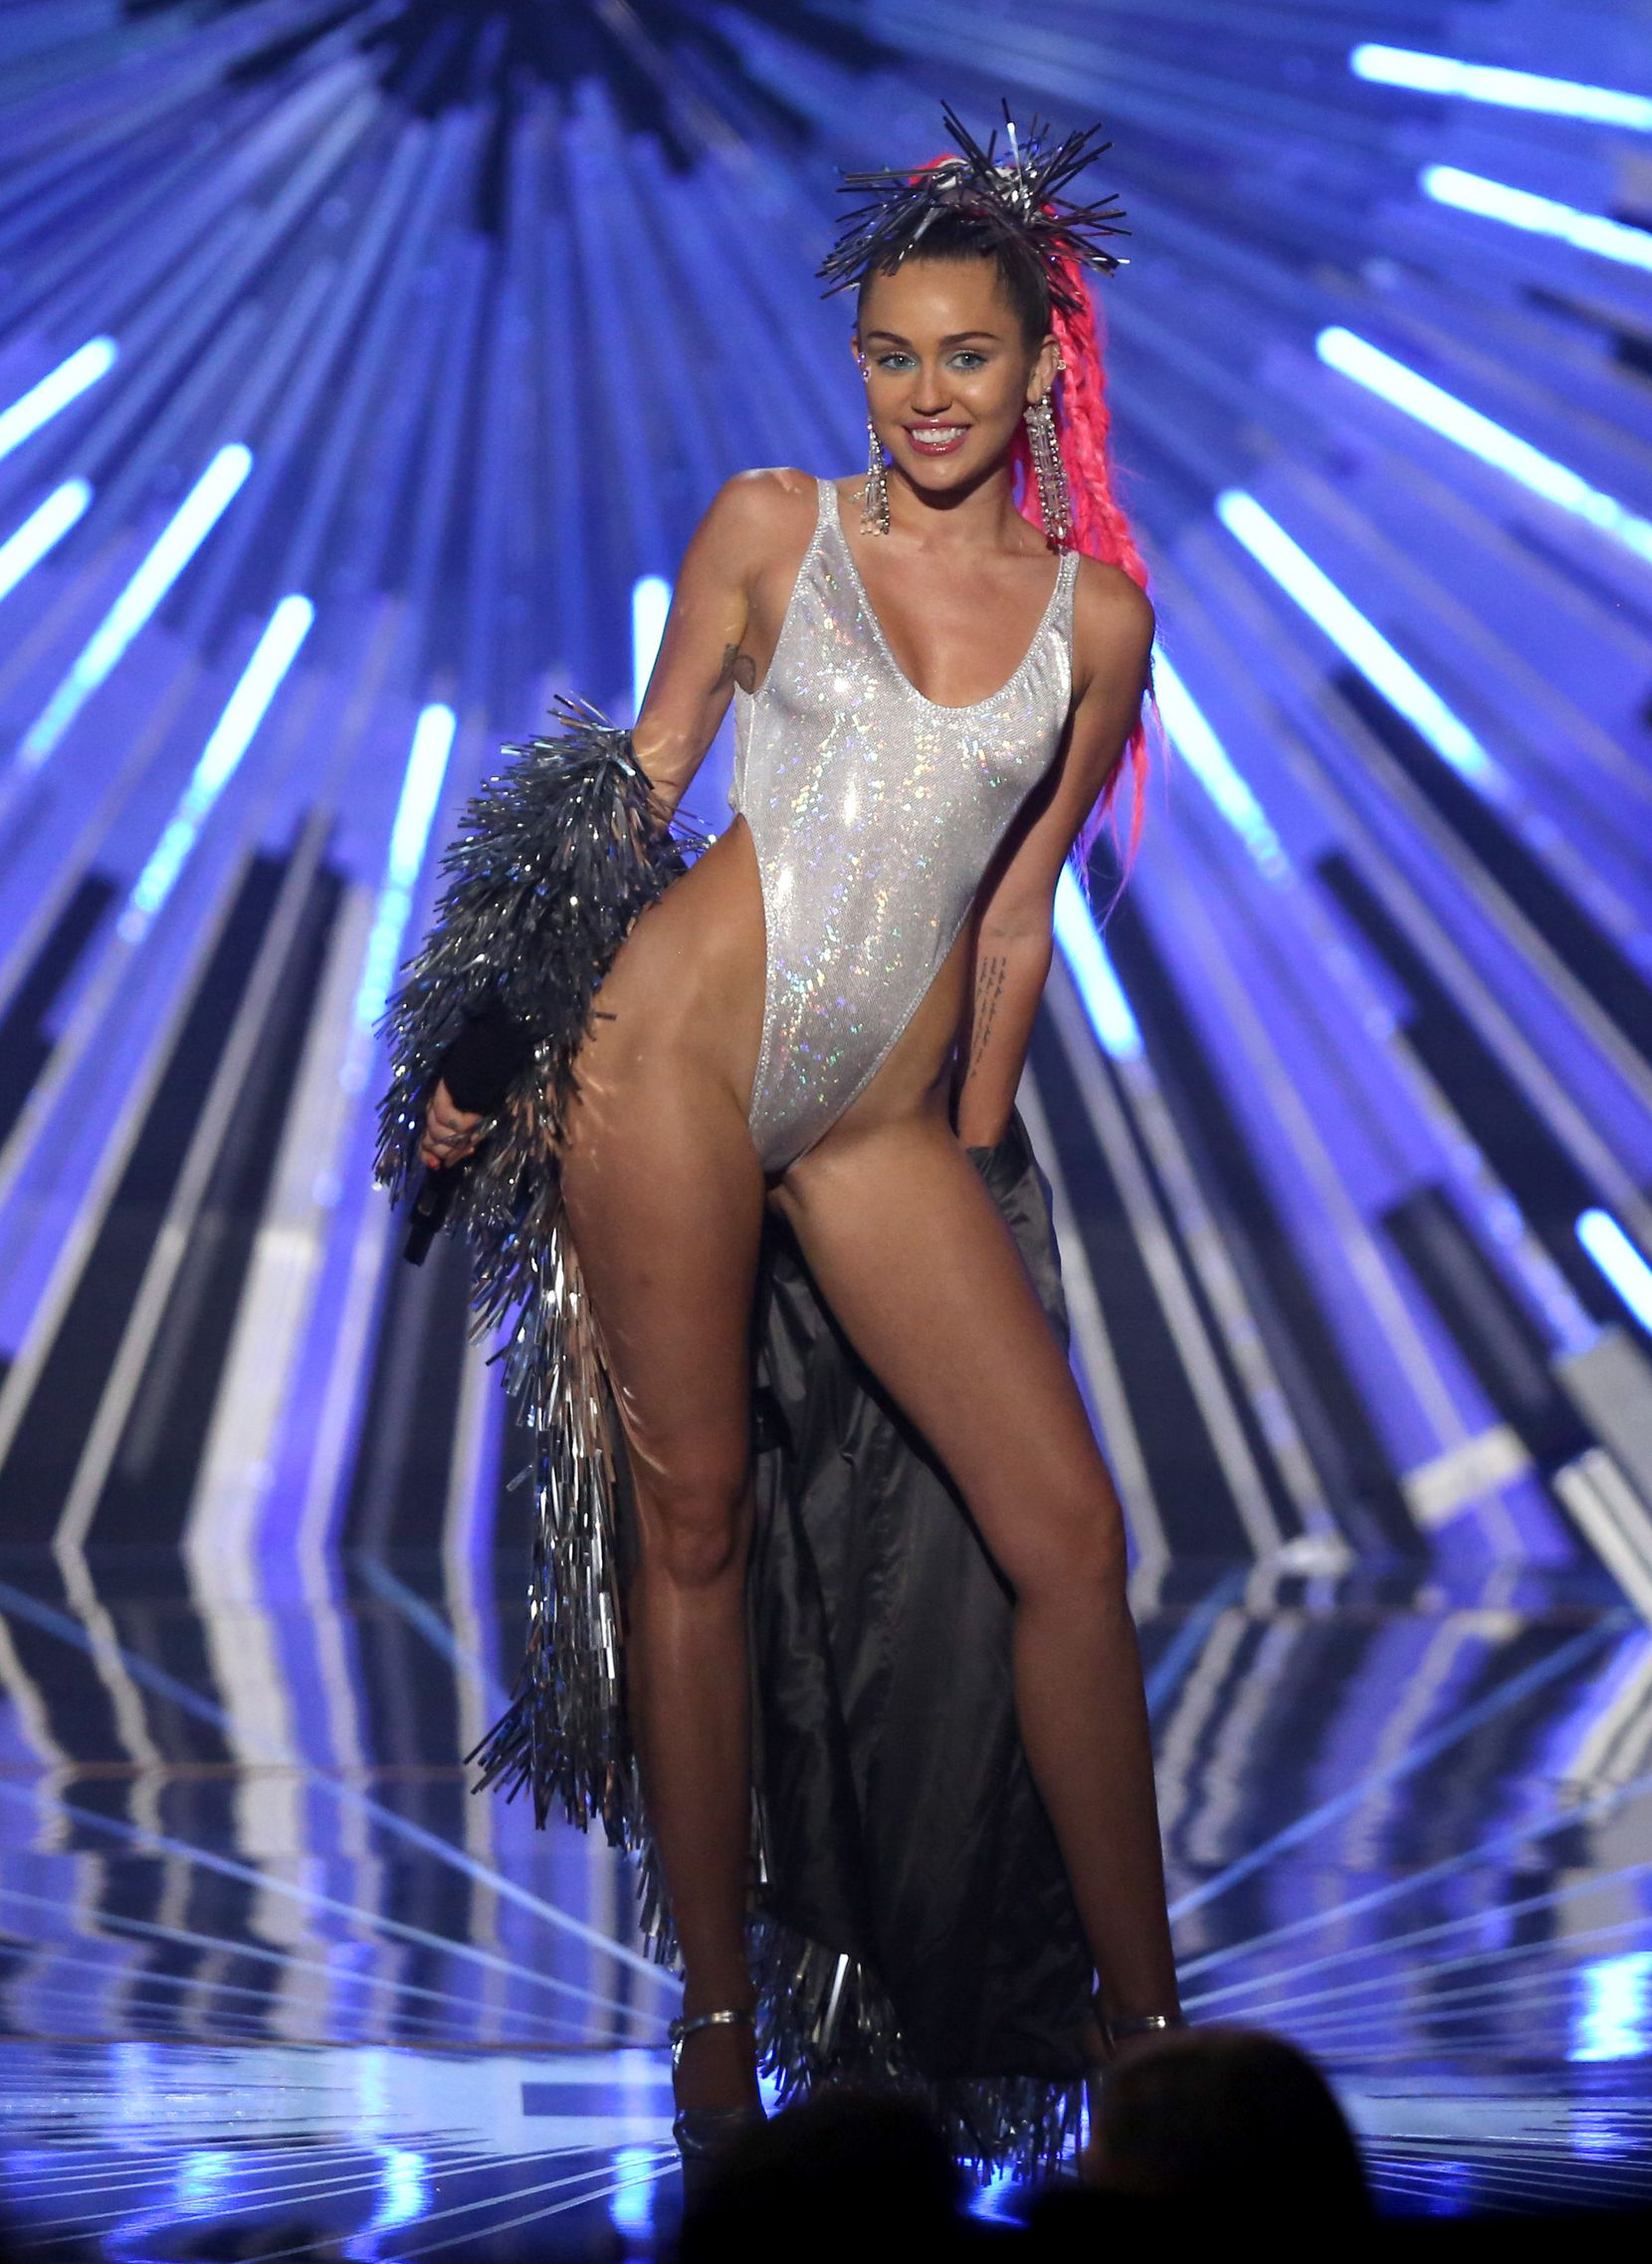 Host Miley Cyrus appears at the MTV Video Music Awards at the Microsoft Theater on Sunday, Aug. 30, 2015, in Los Angeles.